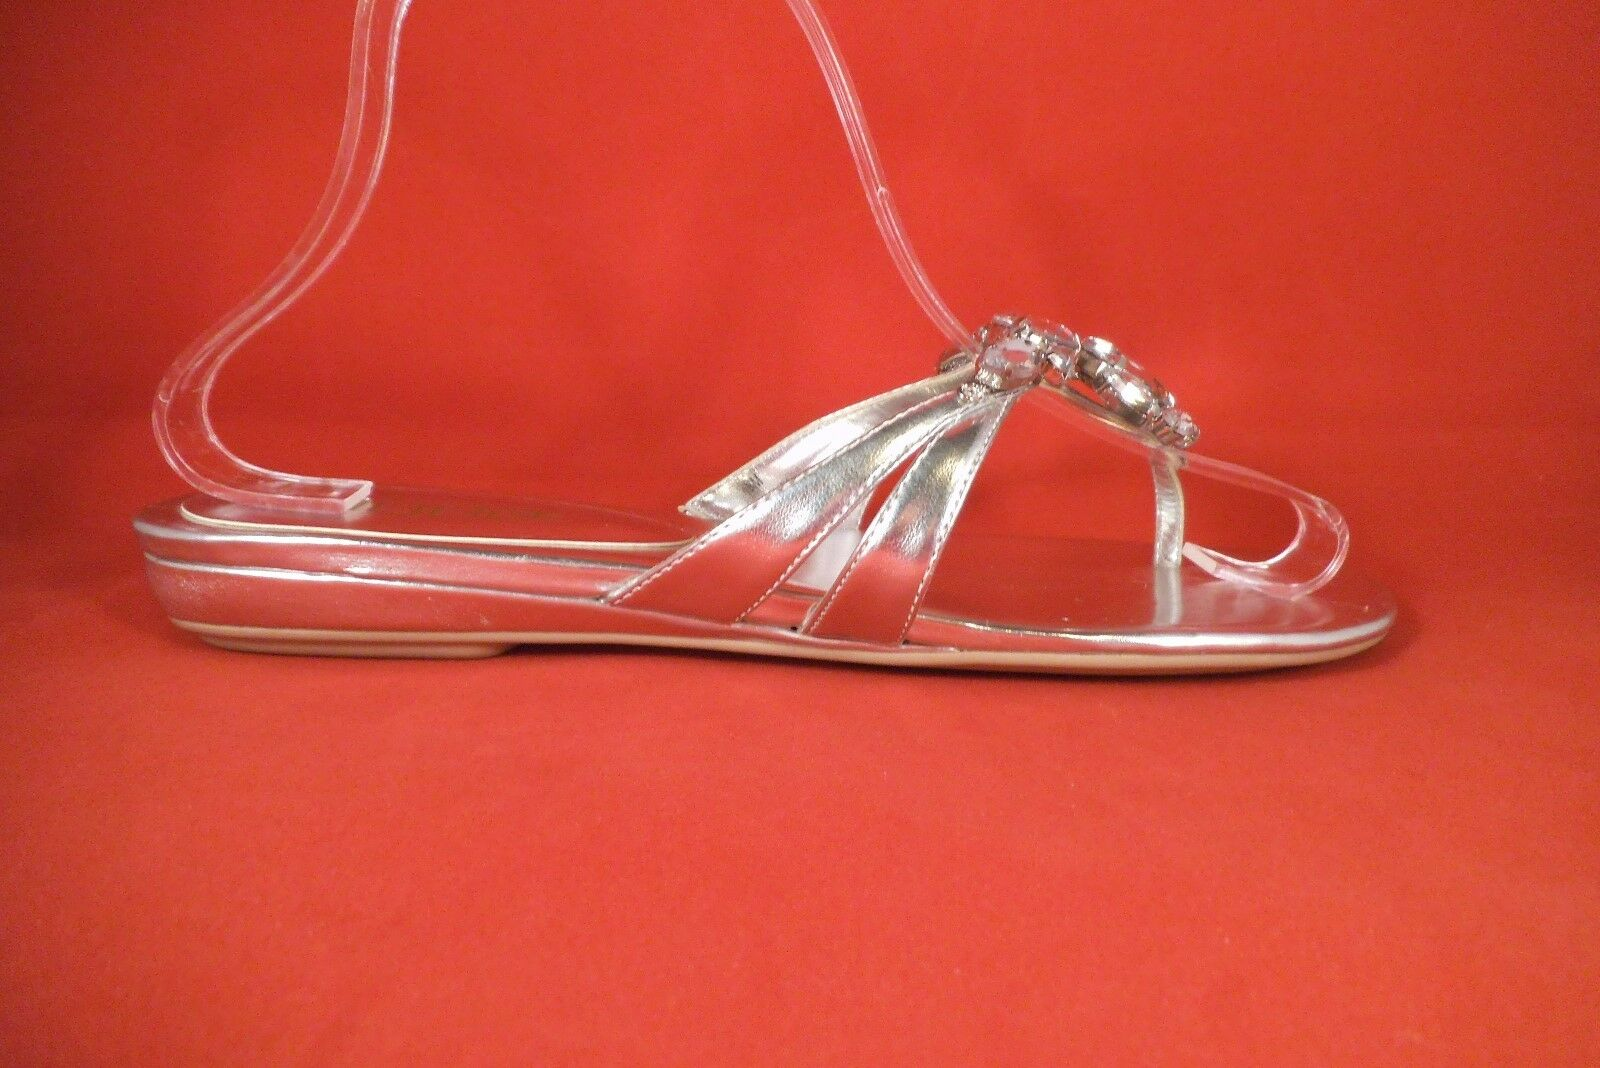 NEW MODA SANDALS PANA SILVER CLEAR CRYSTALS THONG FLIP FLOP SANDALS MODA SIZE 9 MED 3786c5